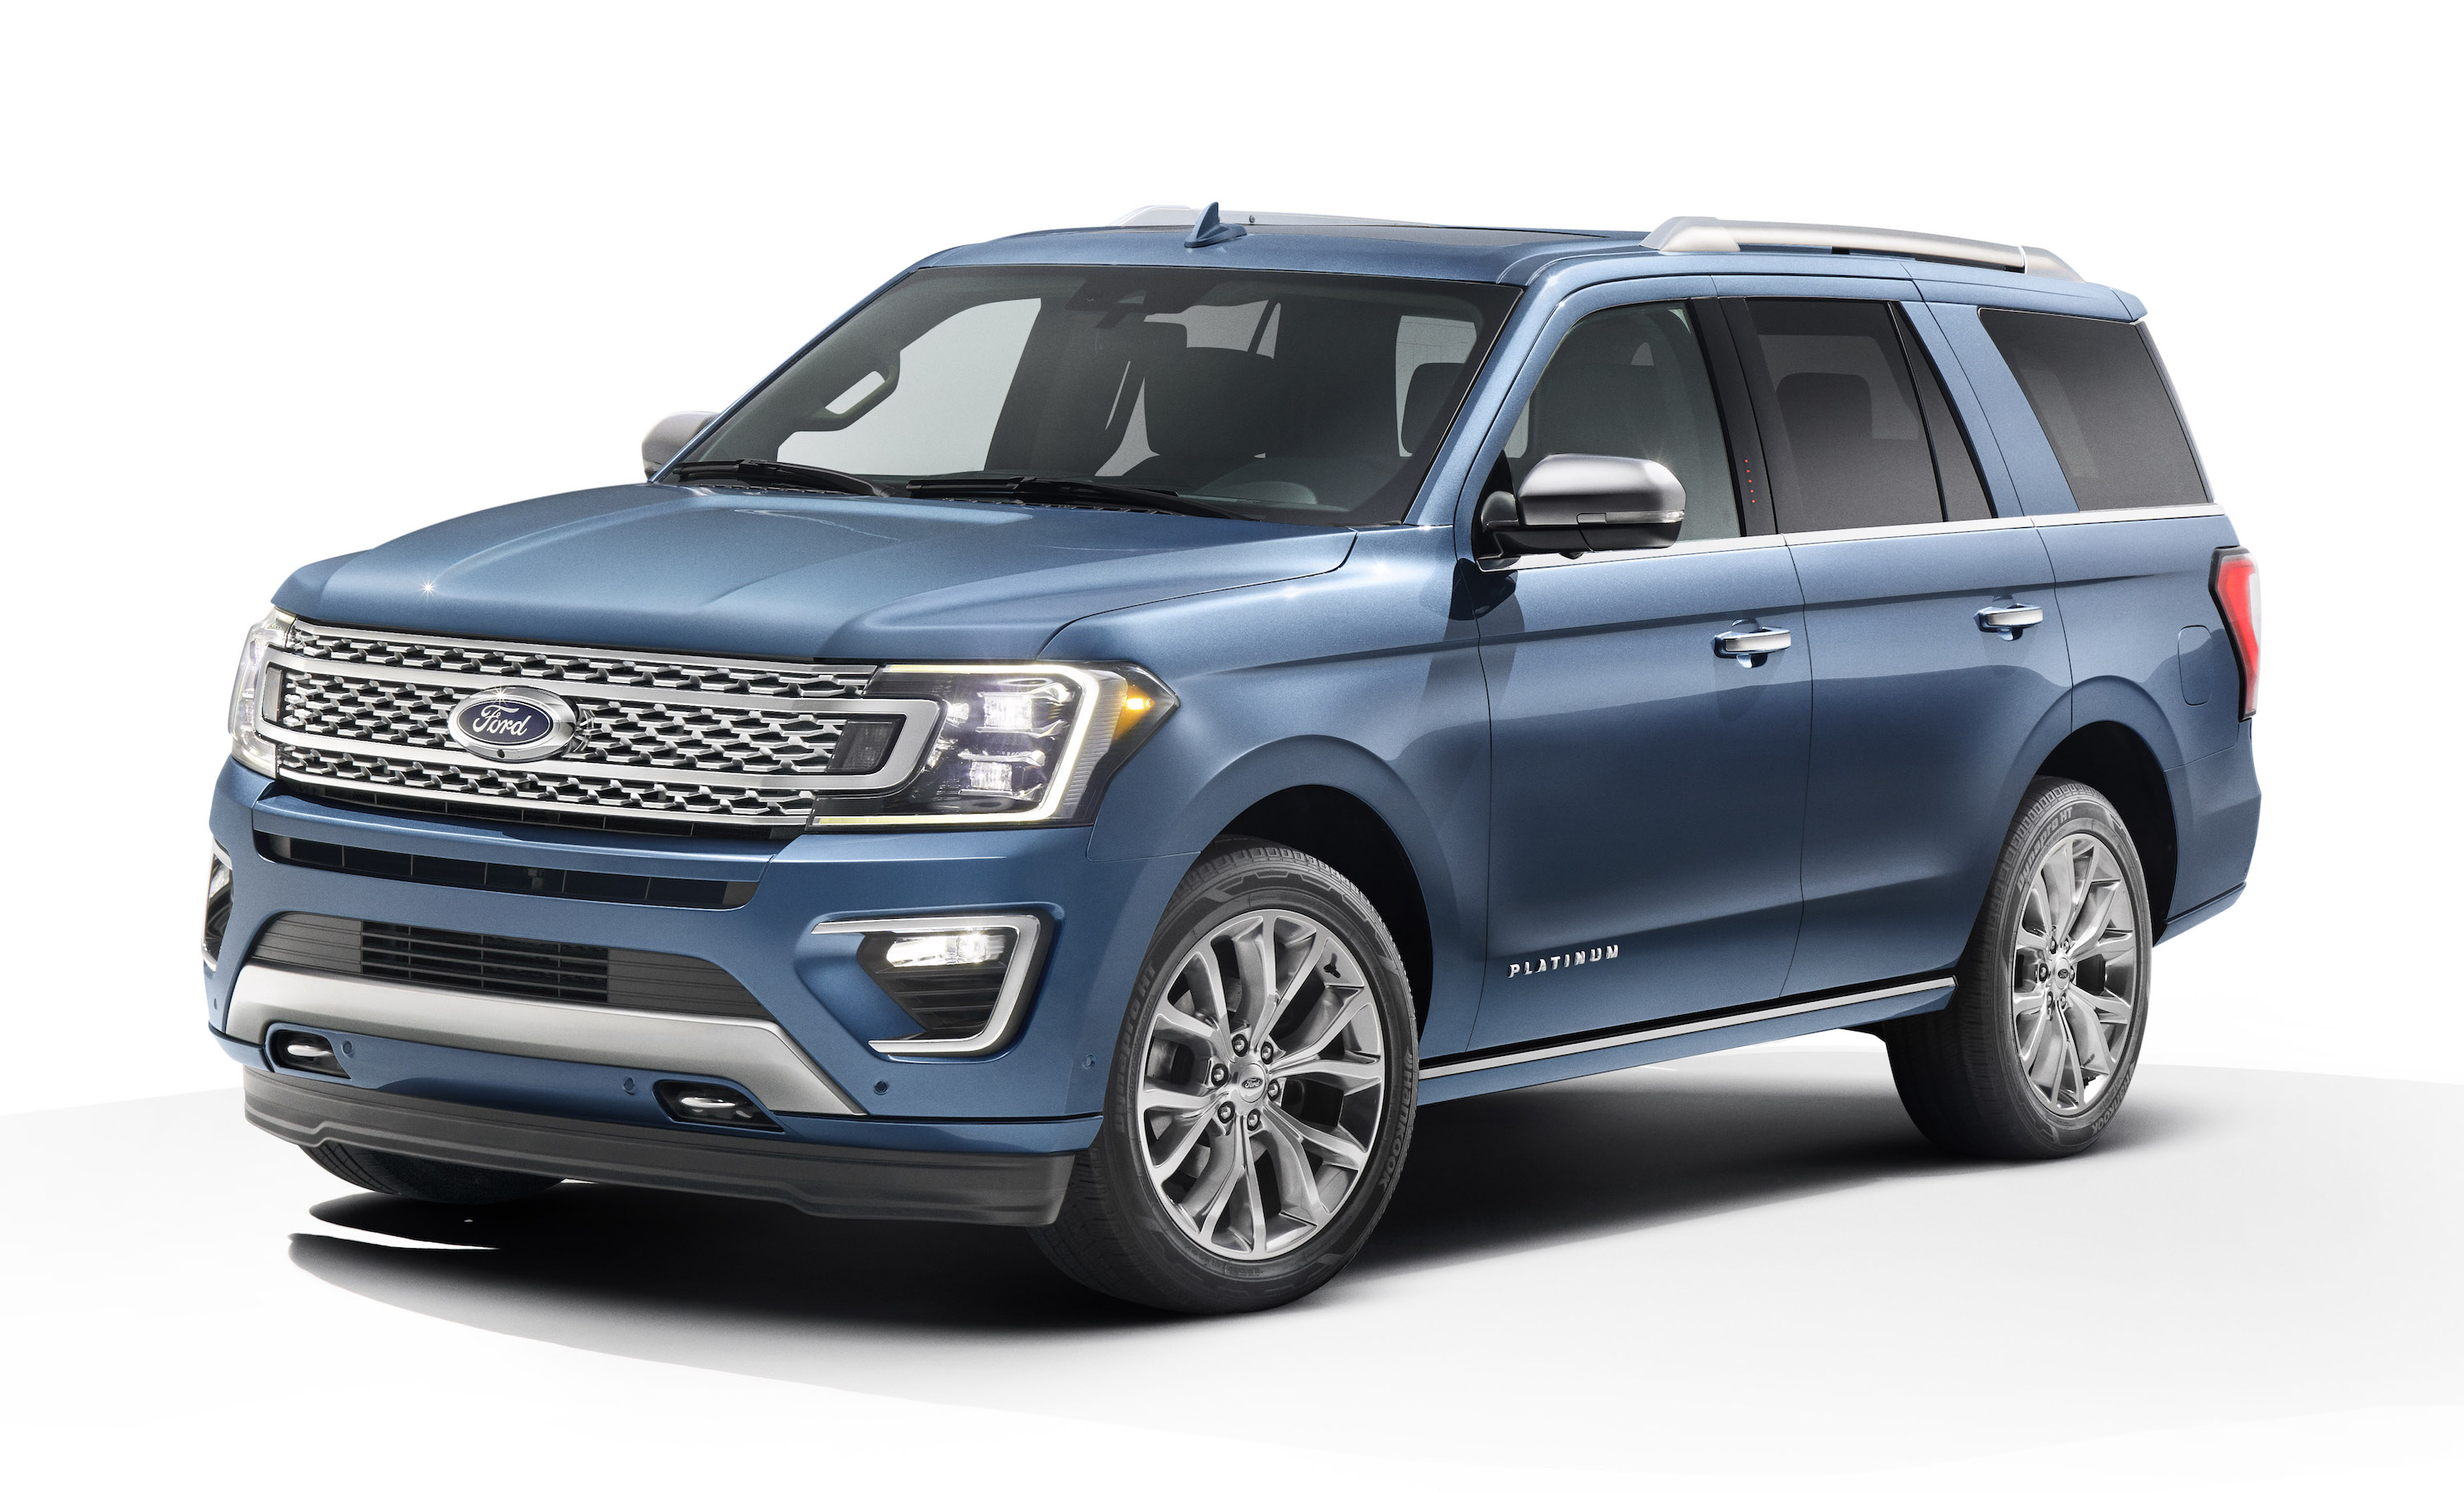 THE BLUE OVAL UPDATES ITS FULL-SIZE SUV… 	The 2018 Ford Expedition